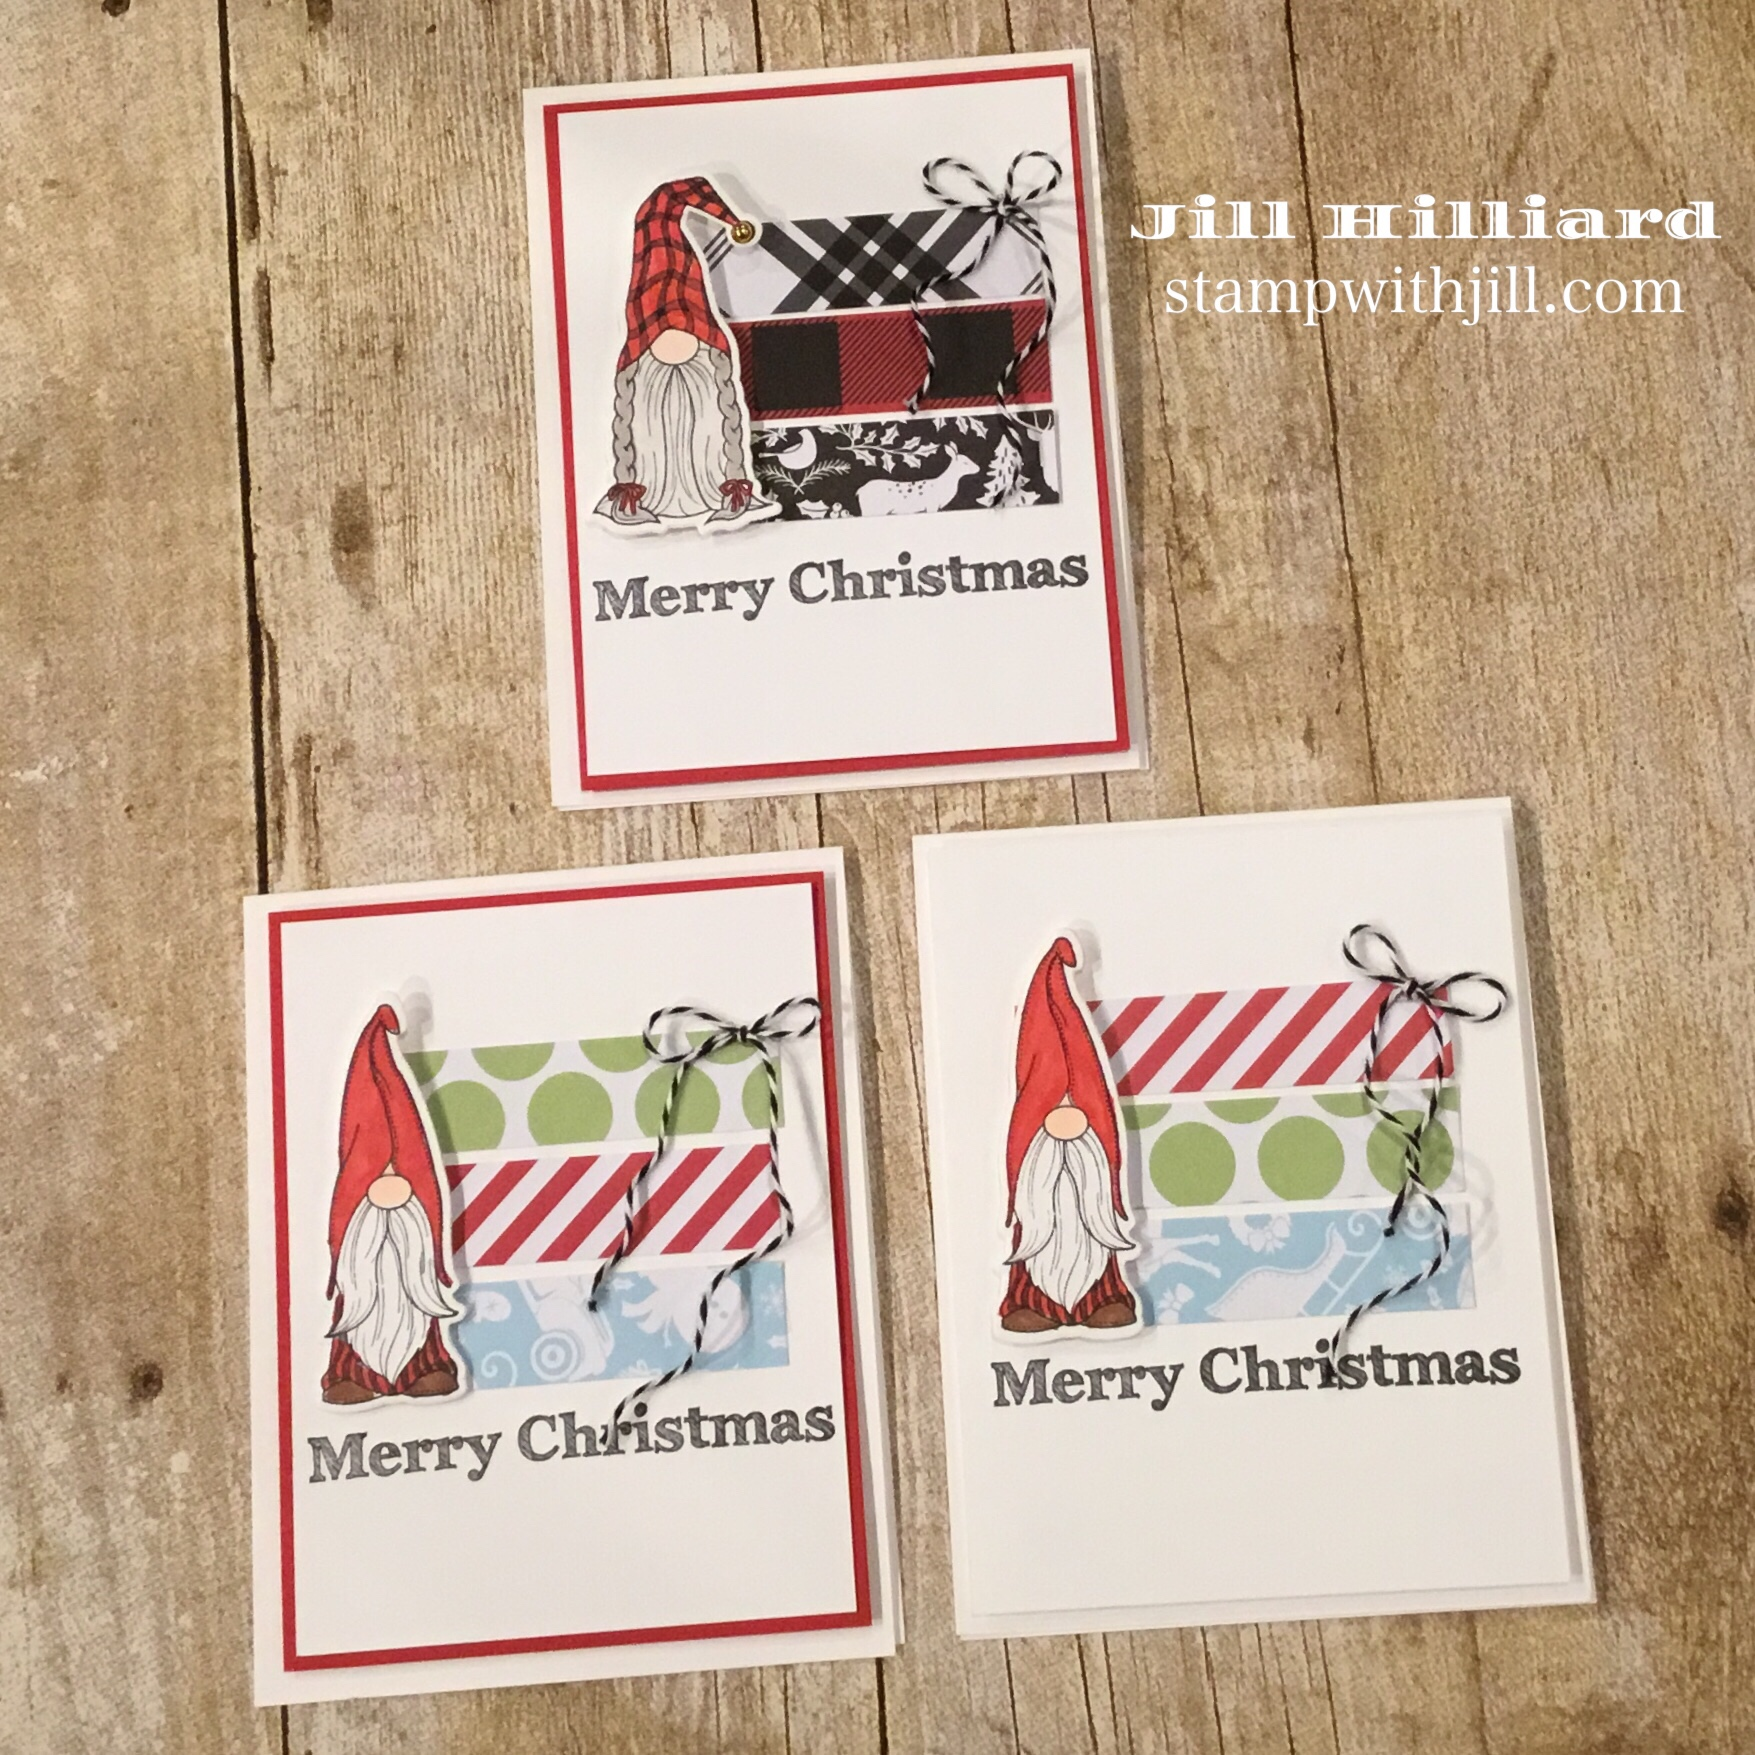 gnome-for-the-holidays-fun-stampers-journey